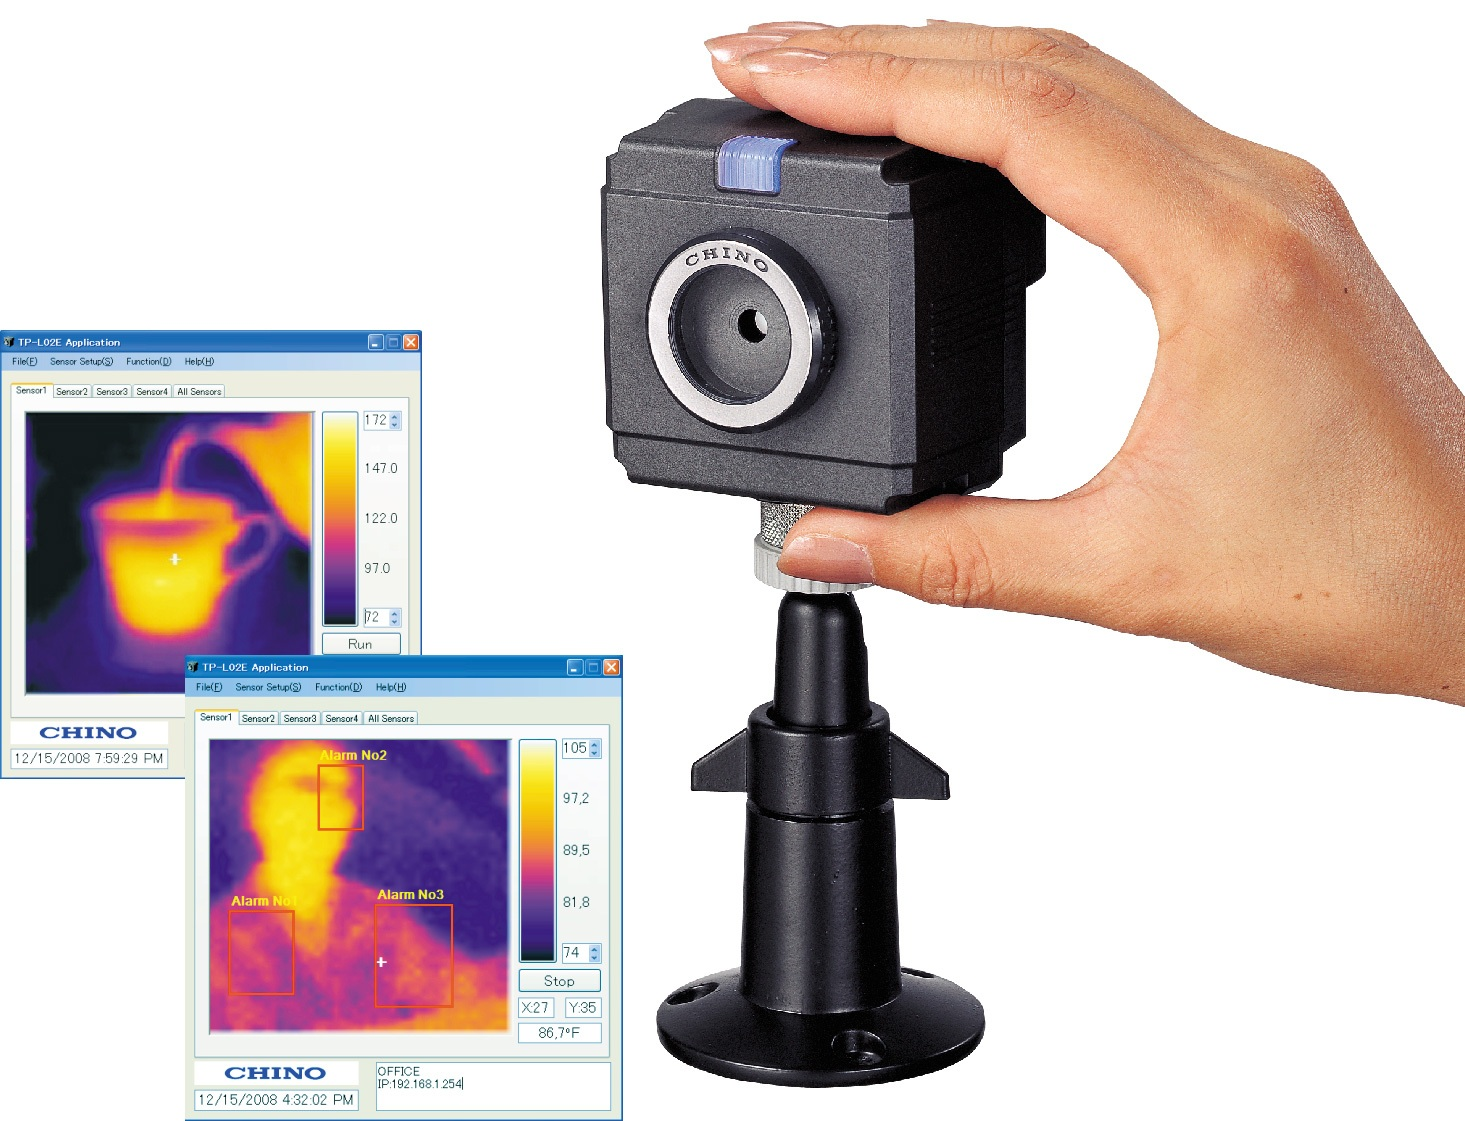 infrared thermal imaging sensor